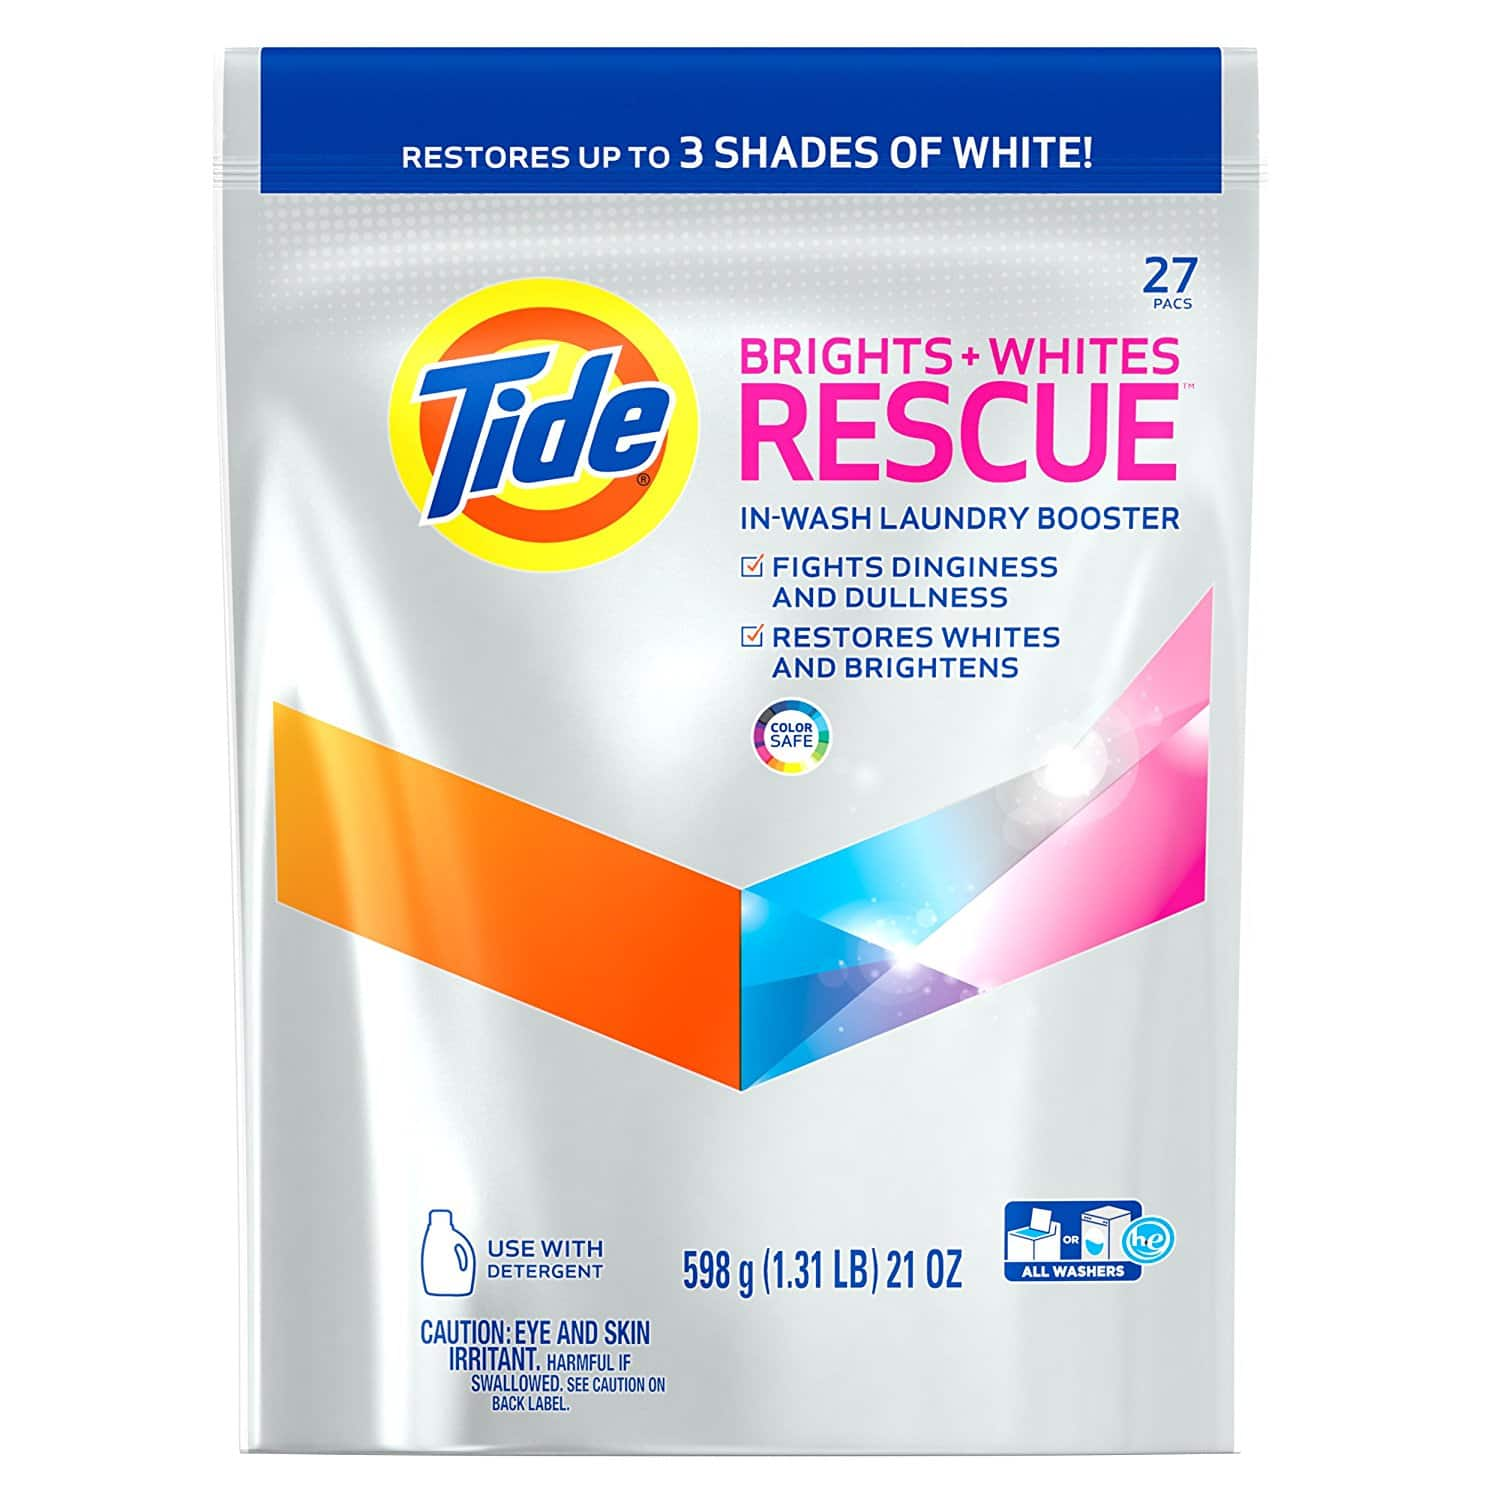 Tide Brights and Whites Rescue Laundry Pacs In-Wash Detergent Booster, 27 Count - $3.75 Coupon on First Subscription & 15% SnS (w/ 5+ SnS) $5.08